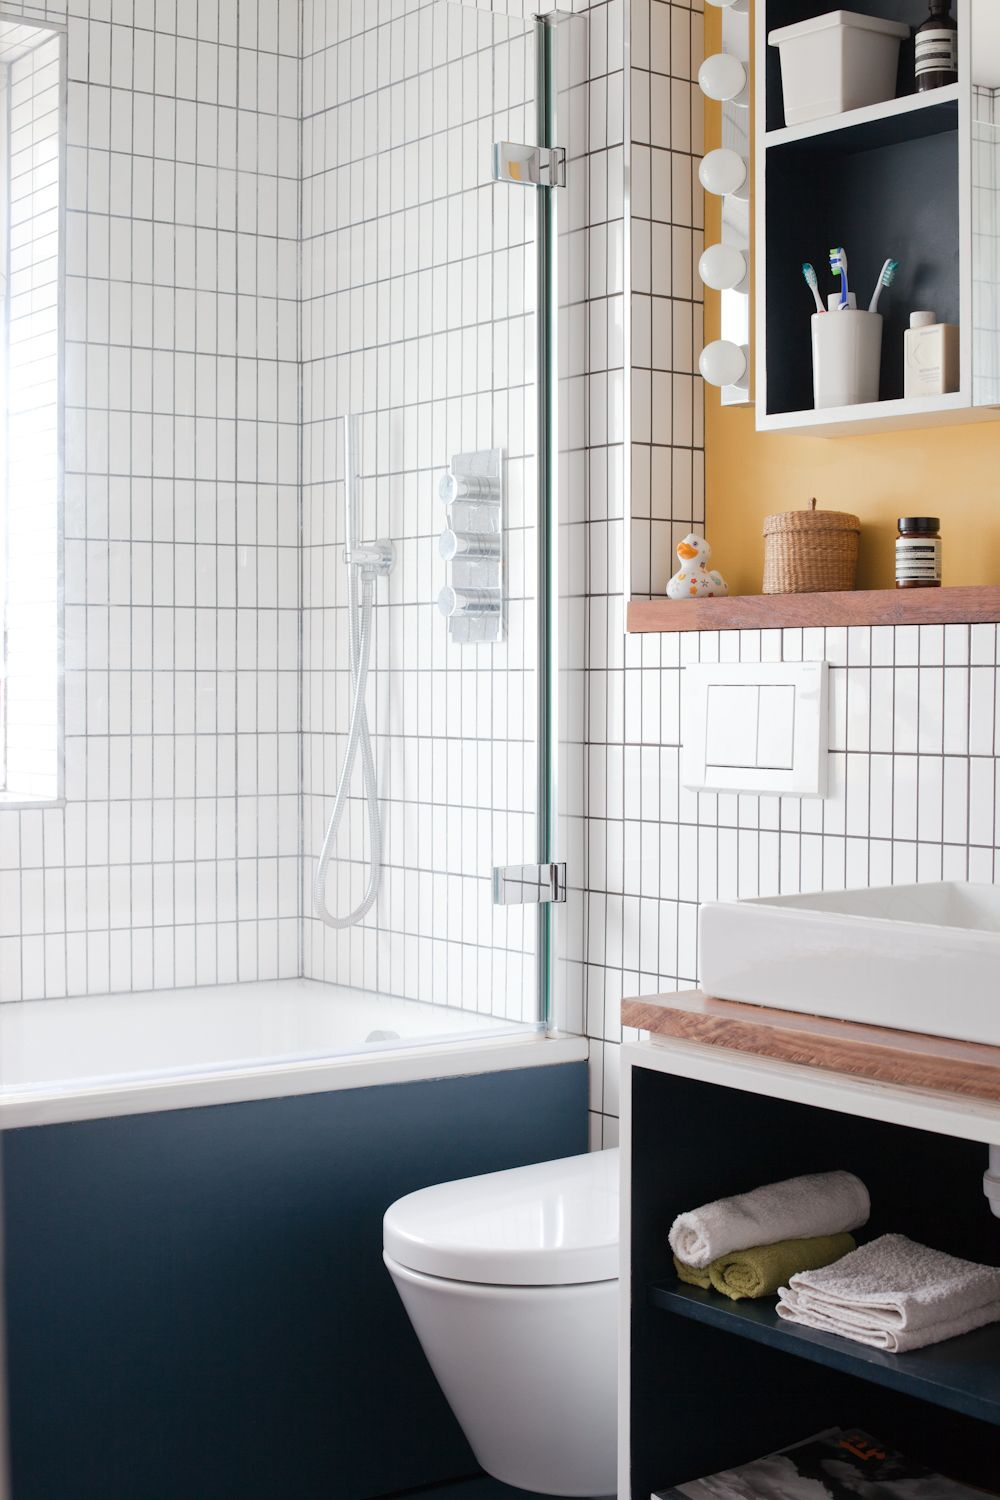 bathroom - blue linoleum, white tiles, Ikea lighting, Catalano ...